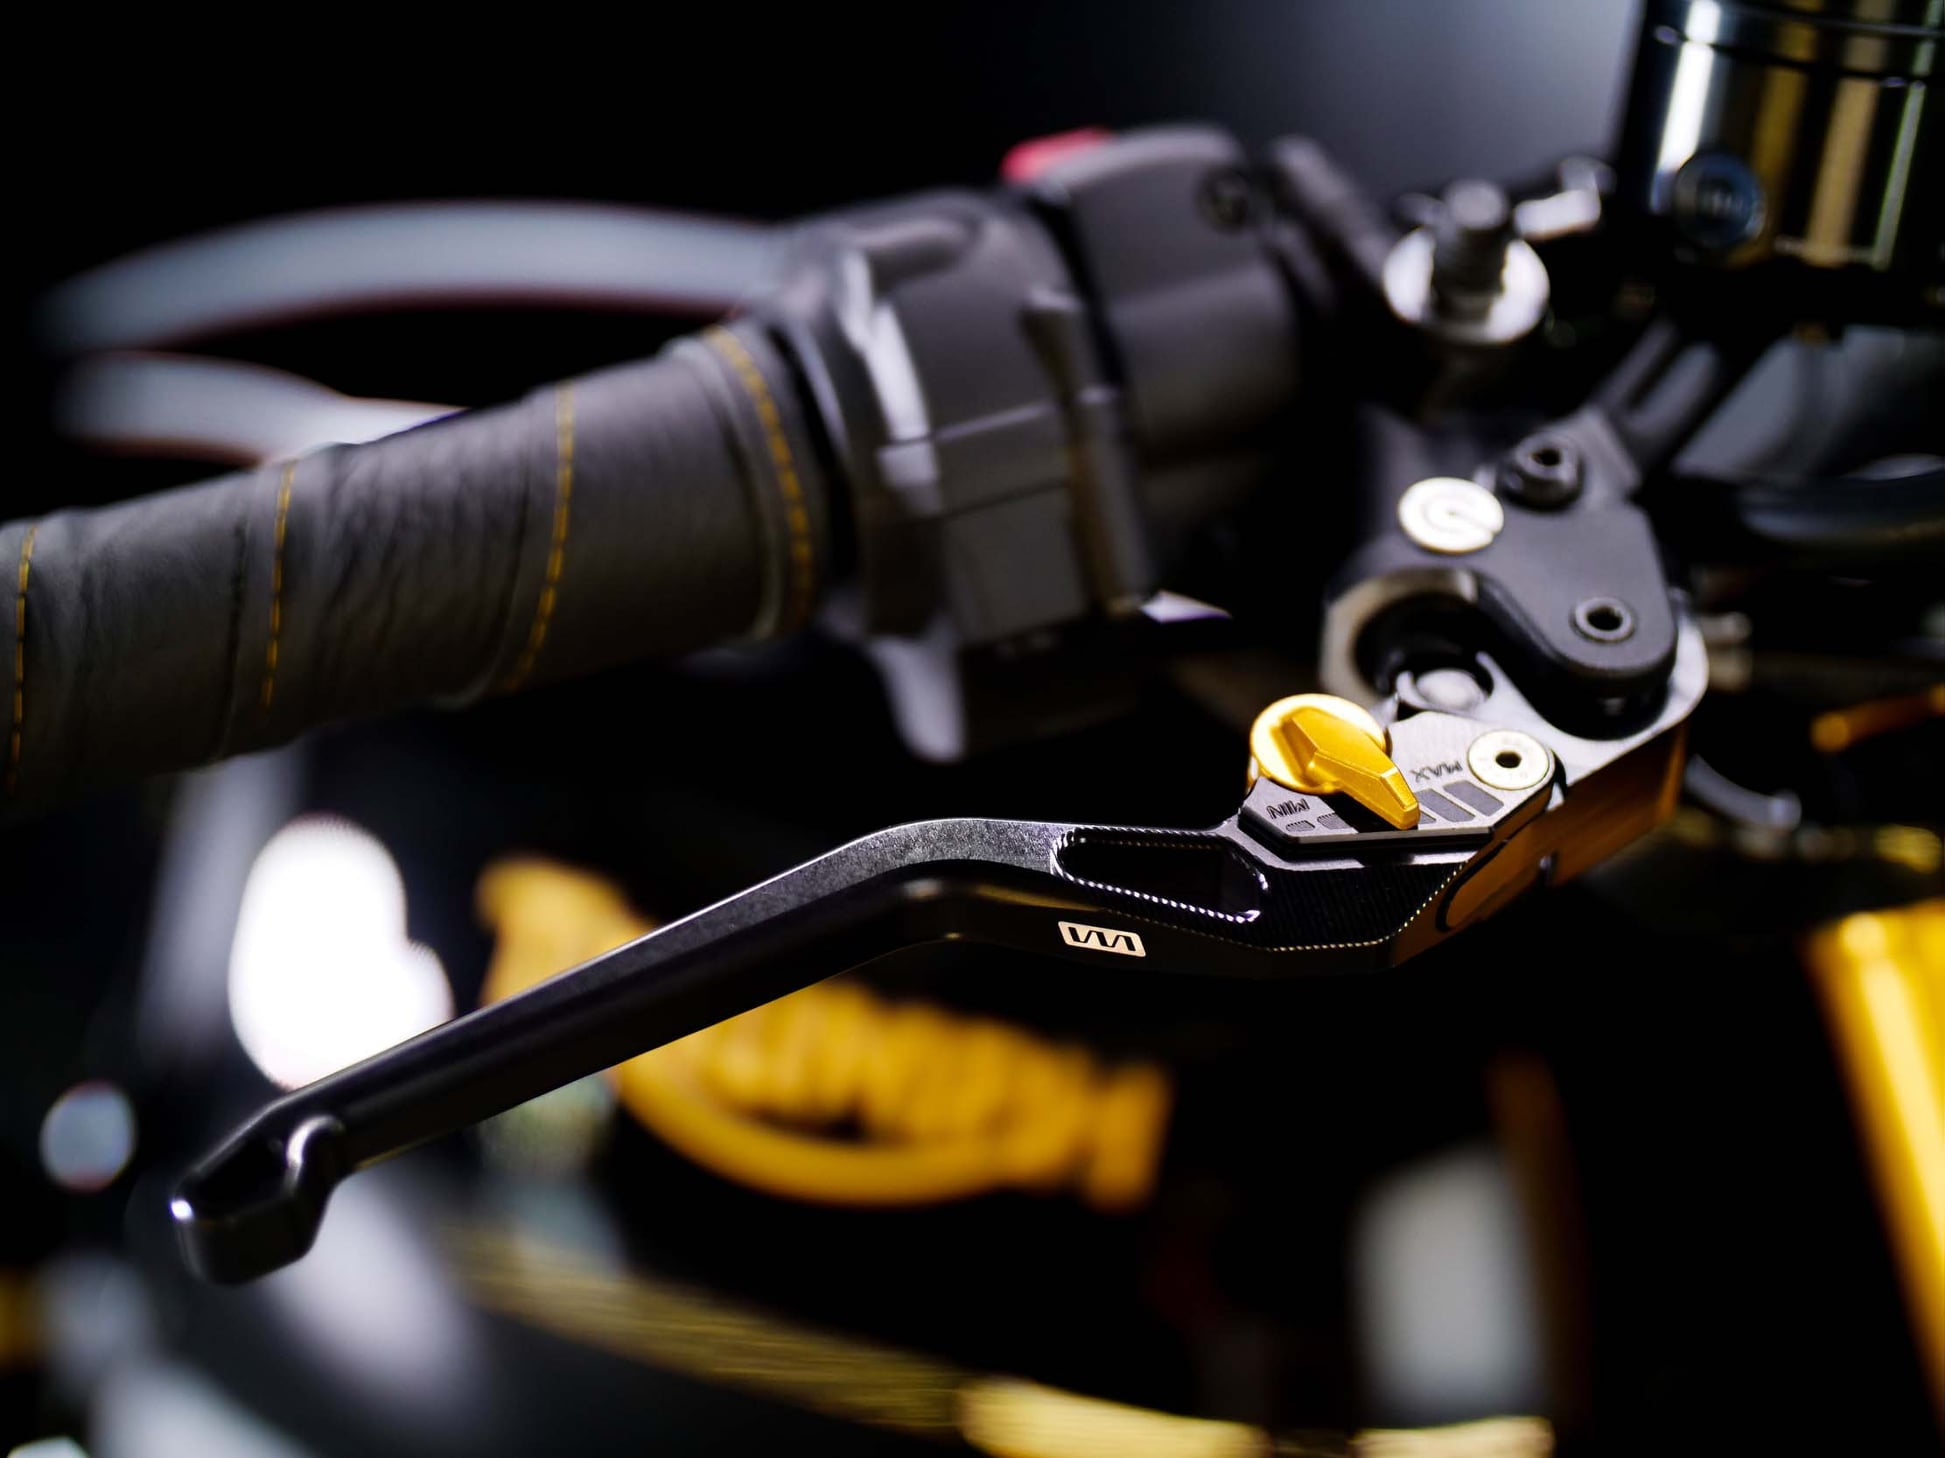 Triumph Thruxton RS Levers by Womet-Tech | Triumph Thruxton RS Clutch and Brake Levers | Triumph Thruxton RS Levers